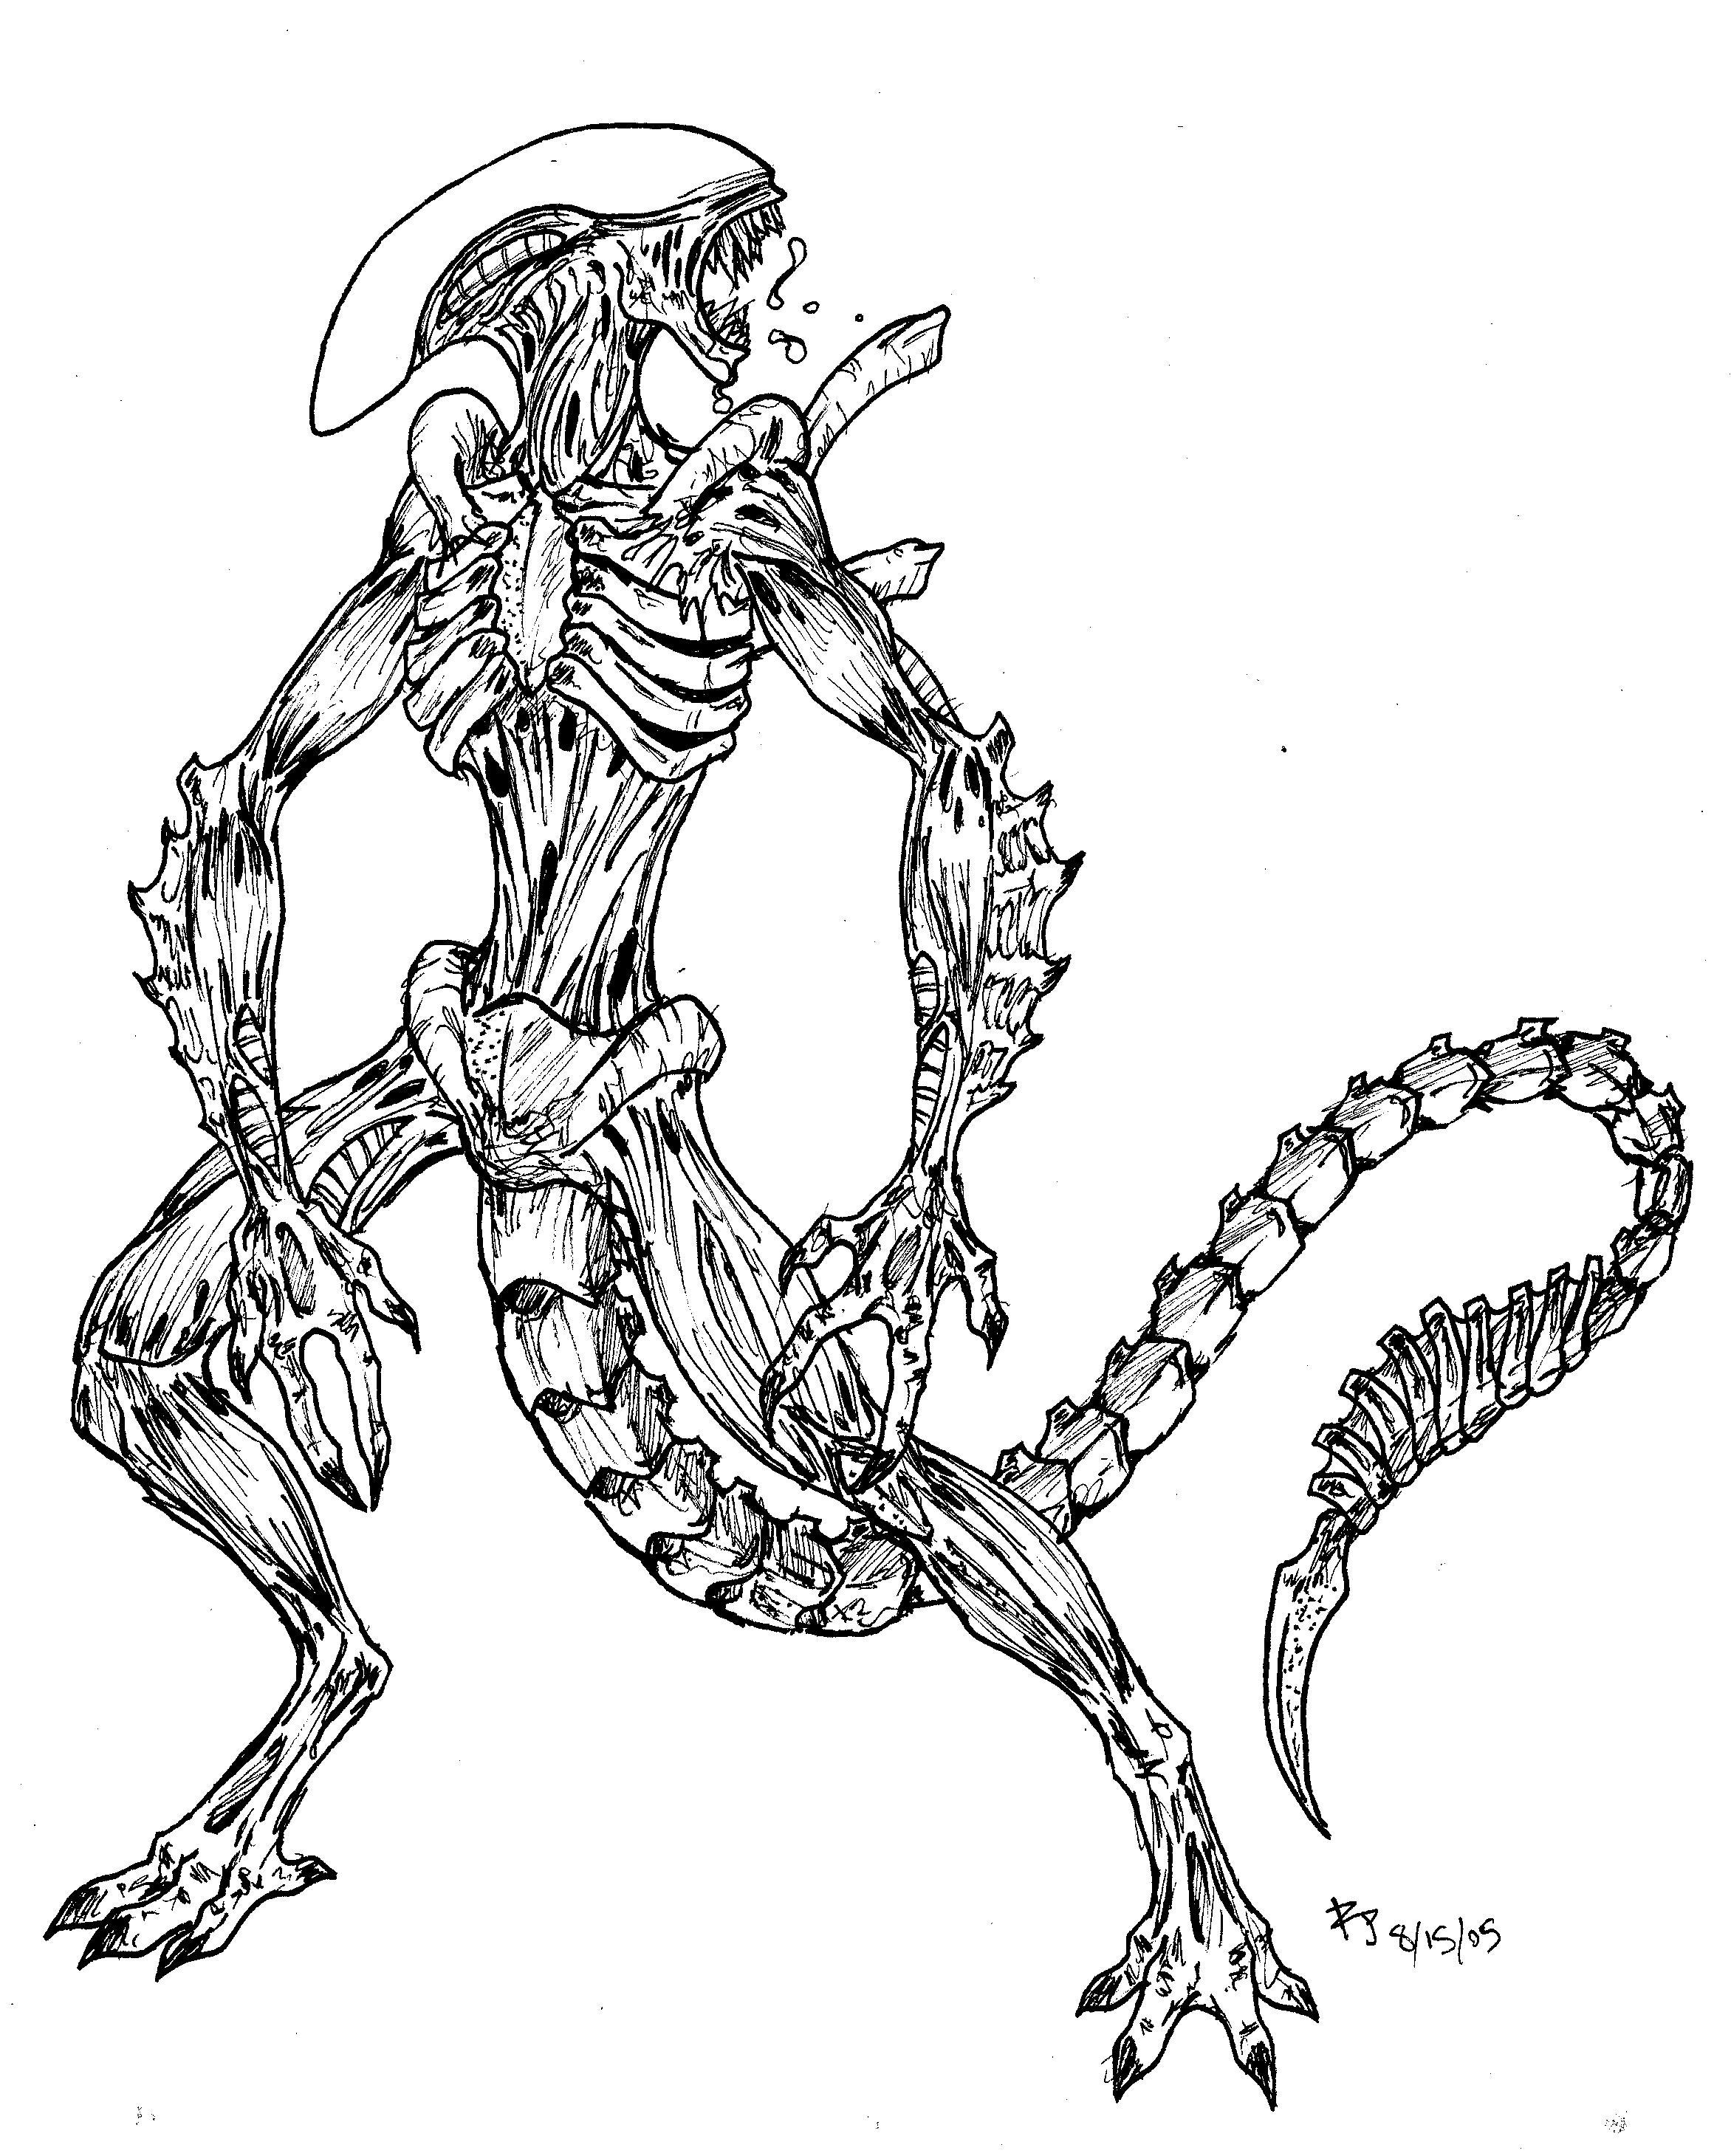 Xenomorph drone by arvalis on deviantart for Xenomorph coloring pages